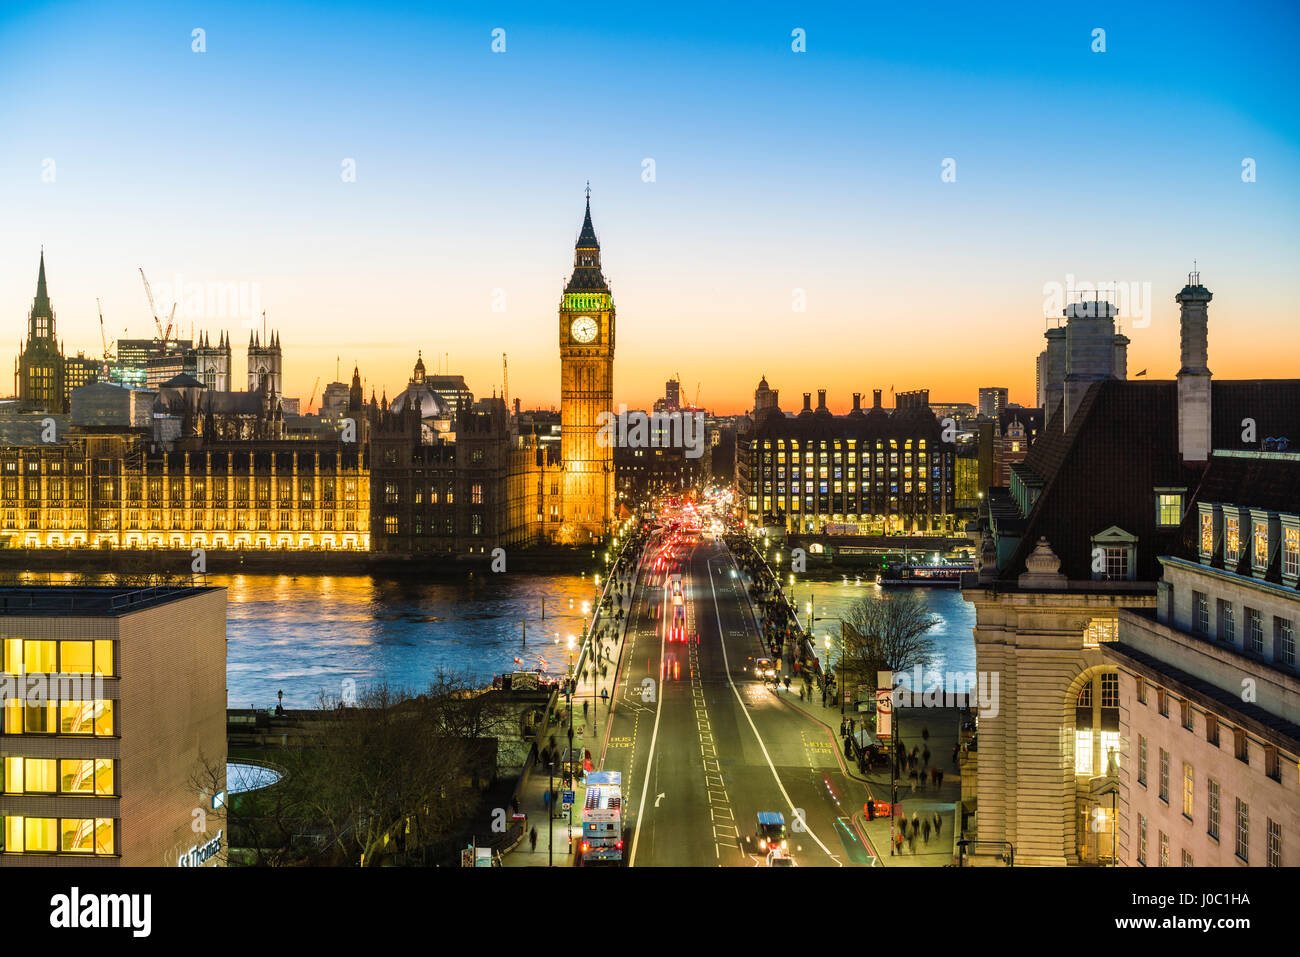 High angle view of Big Ben, the Palace of Westminster and Westminster Bridge at dusk, London, England, UK - Stock Image